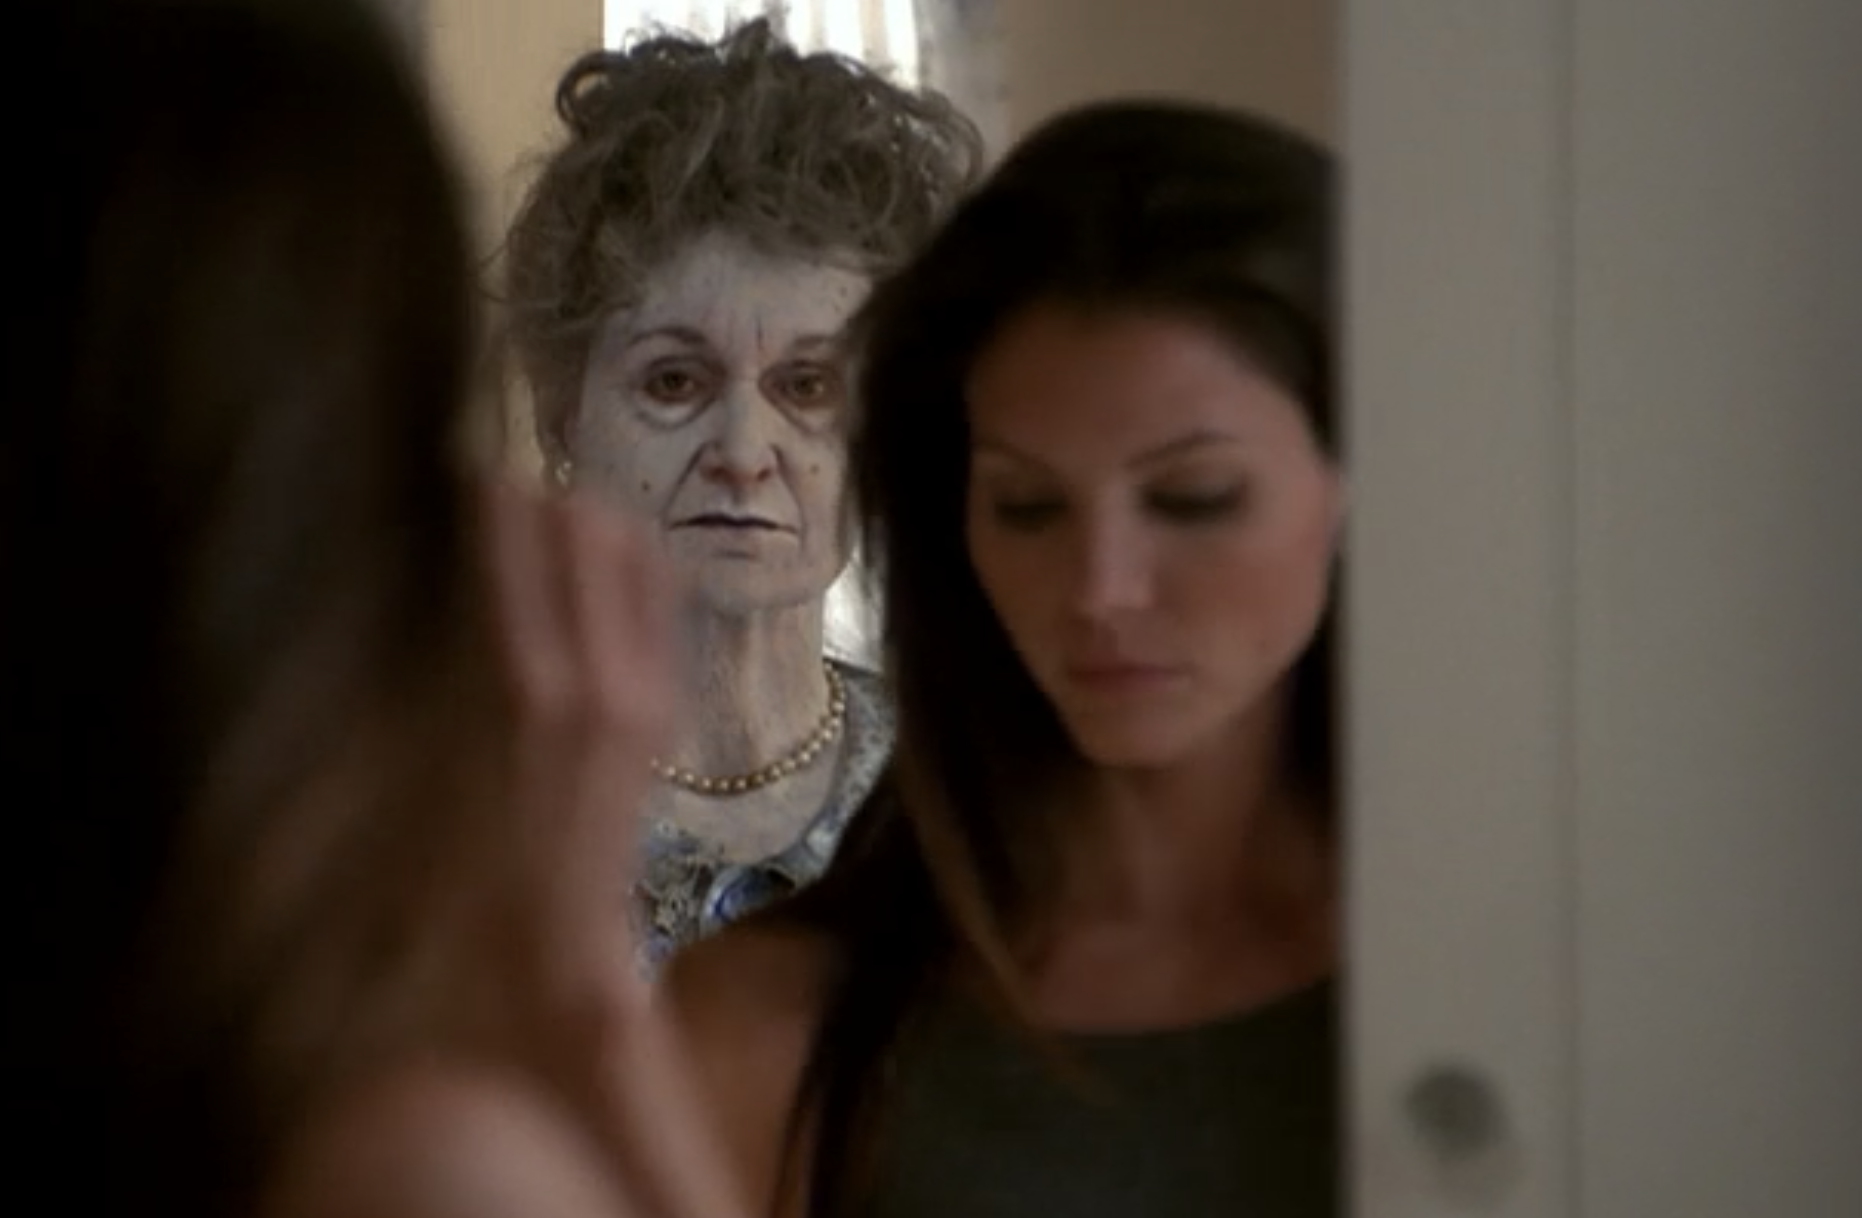 In Angel, Cordelia looks down and a ghost appears in the mirror